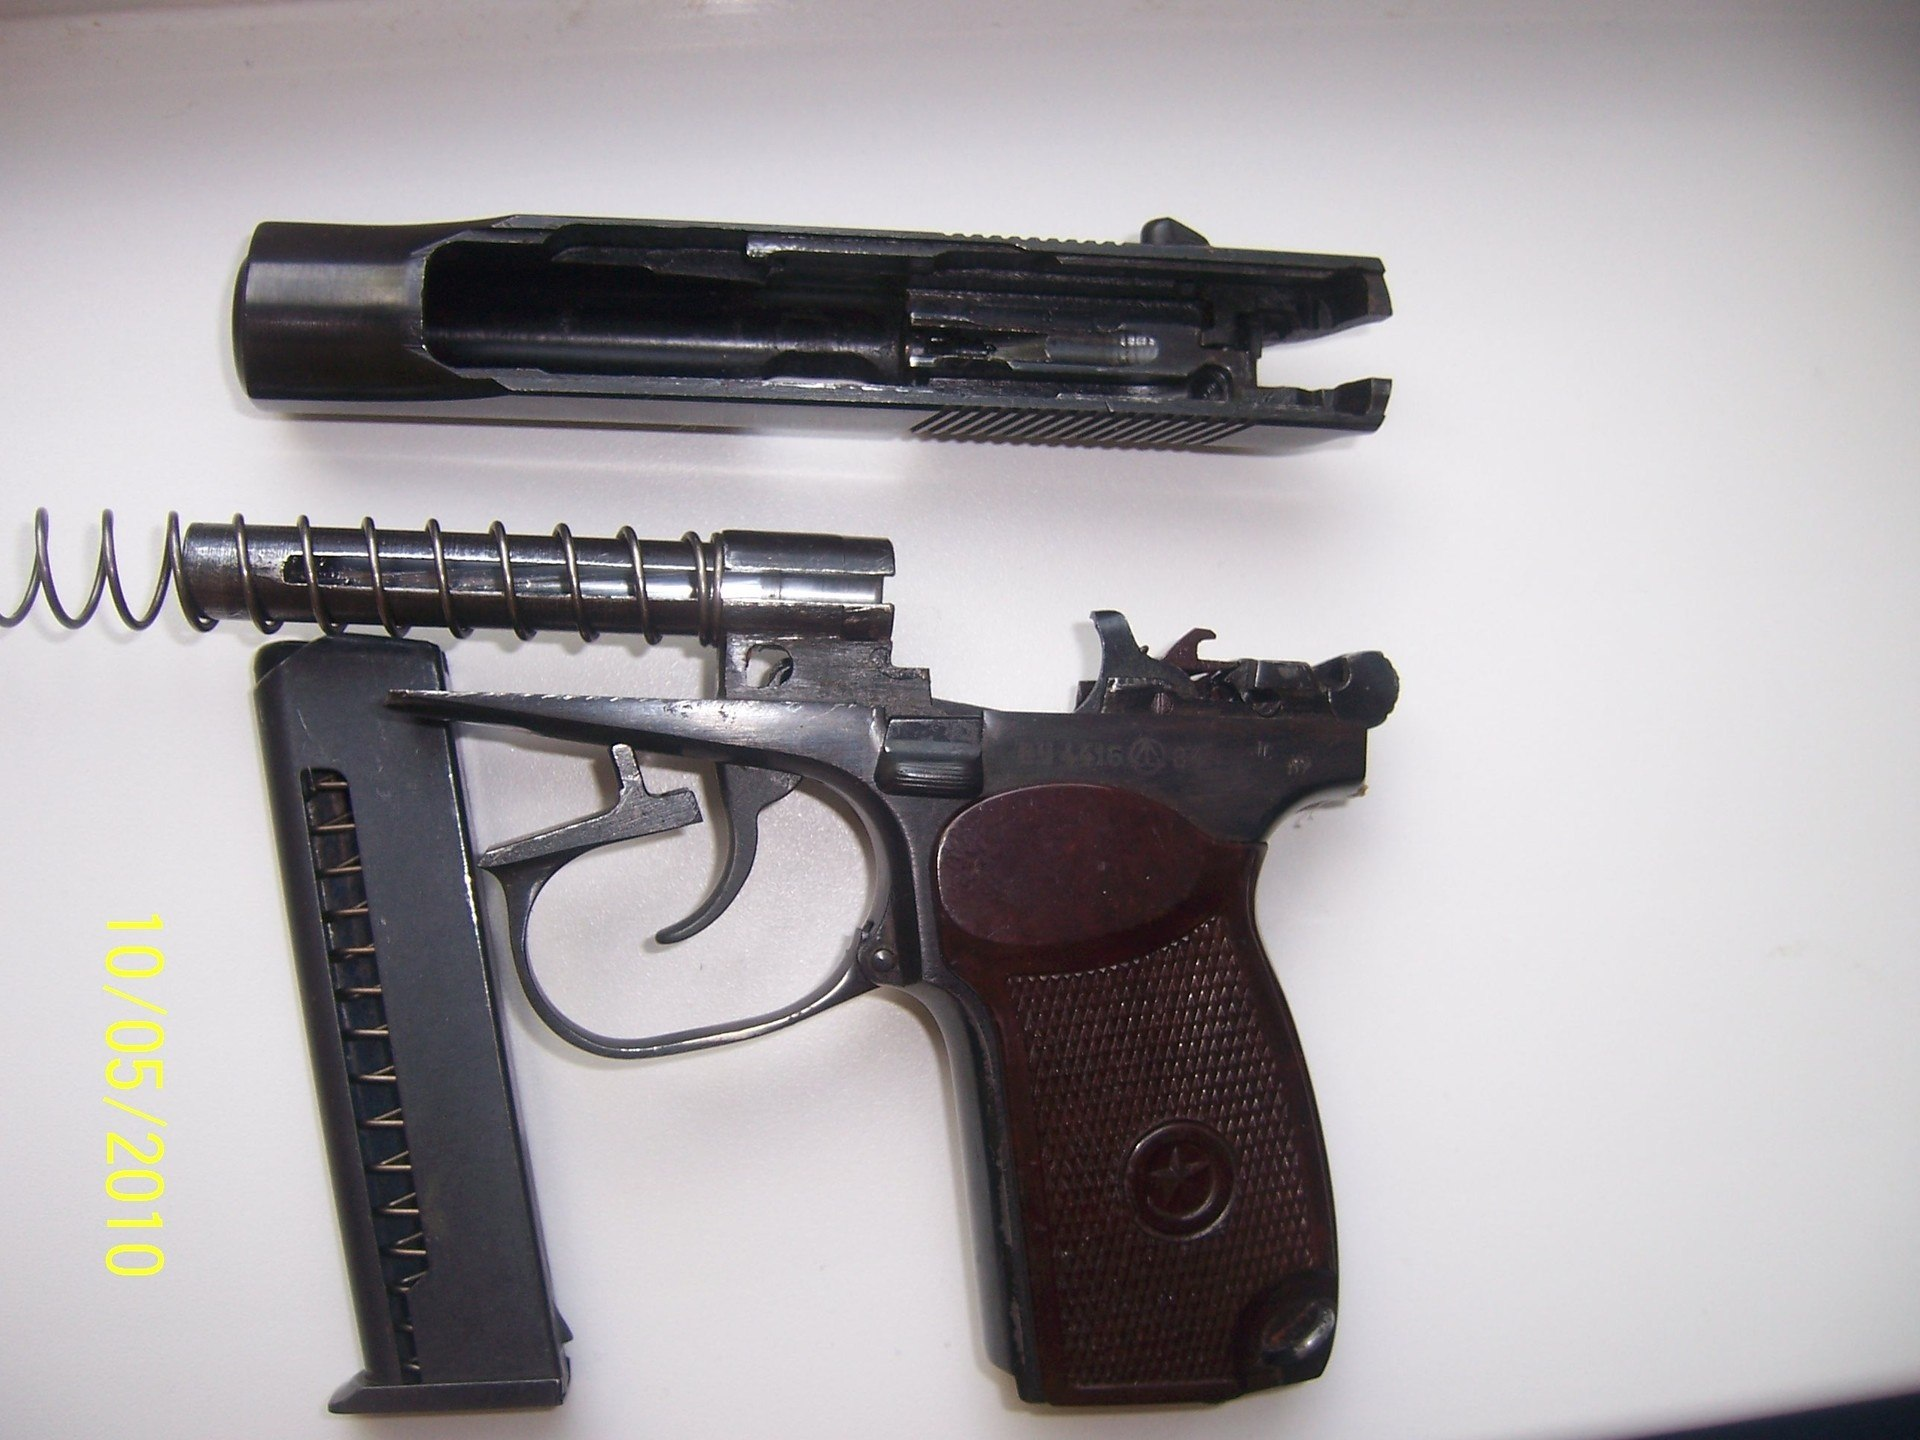 Is it legal to have powerful, but demilled guns on display? - Quora